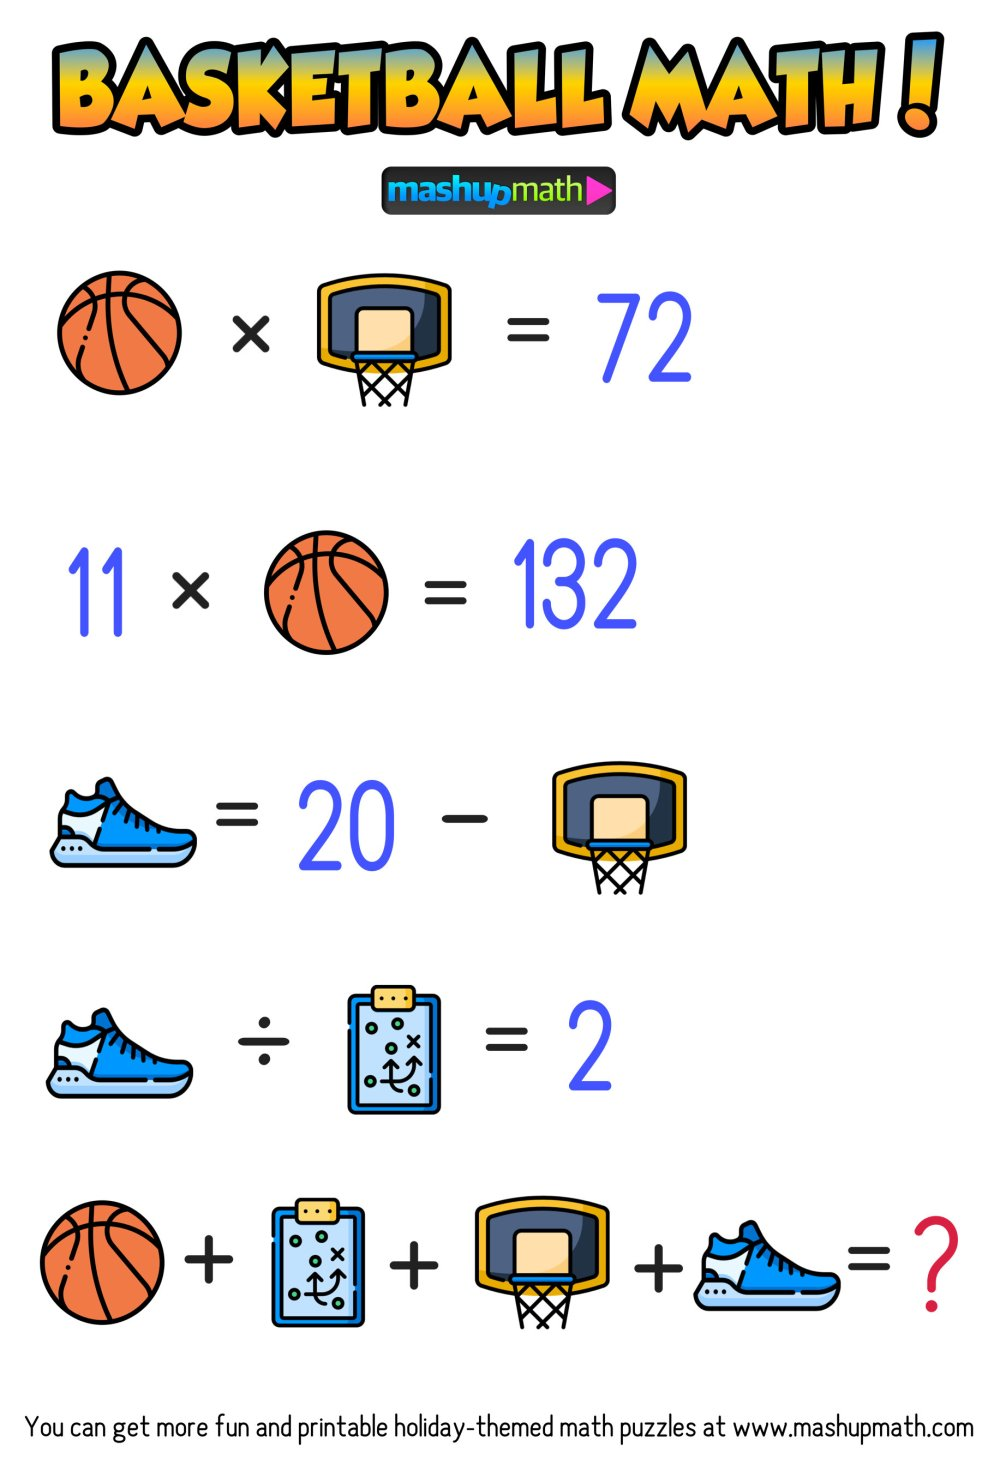 medium resolution of Are Your Kids Ready for These Basketball Math Puzzles? — Mashup Math